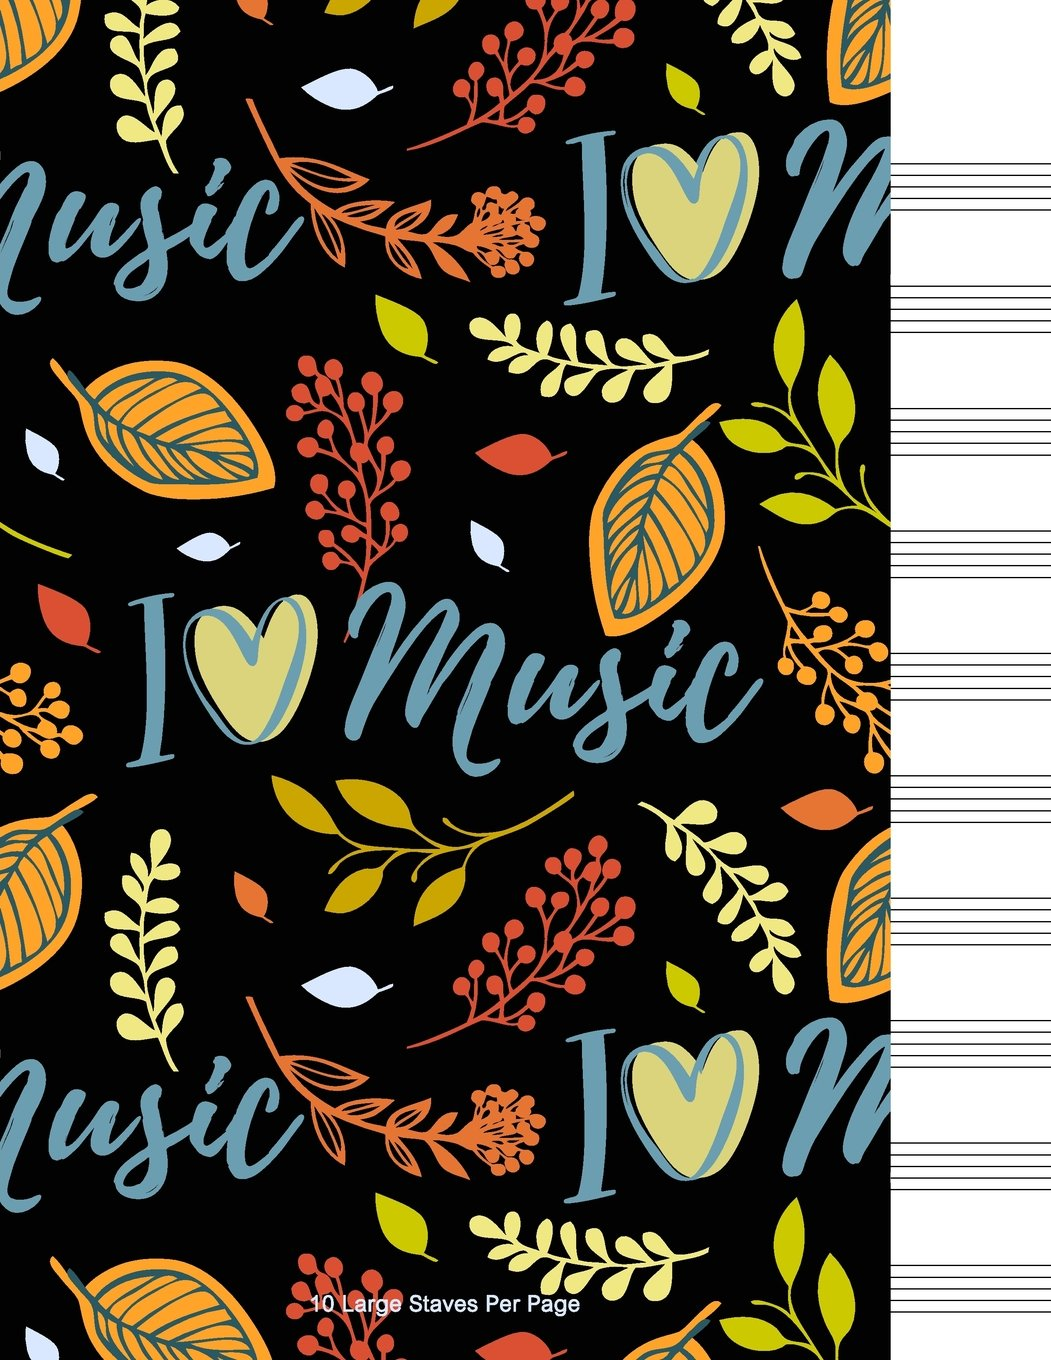 I Love Music: Musical, Floral Watercolor, Colorful Notebook, Blank Sheet Music Staff Manuscript Paper, 10 Large Staves Per Page, 8.5 x 11 inch 110 page. pdf